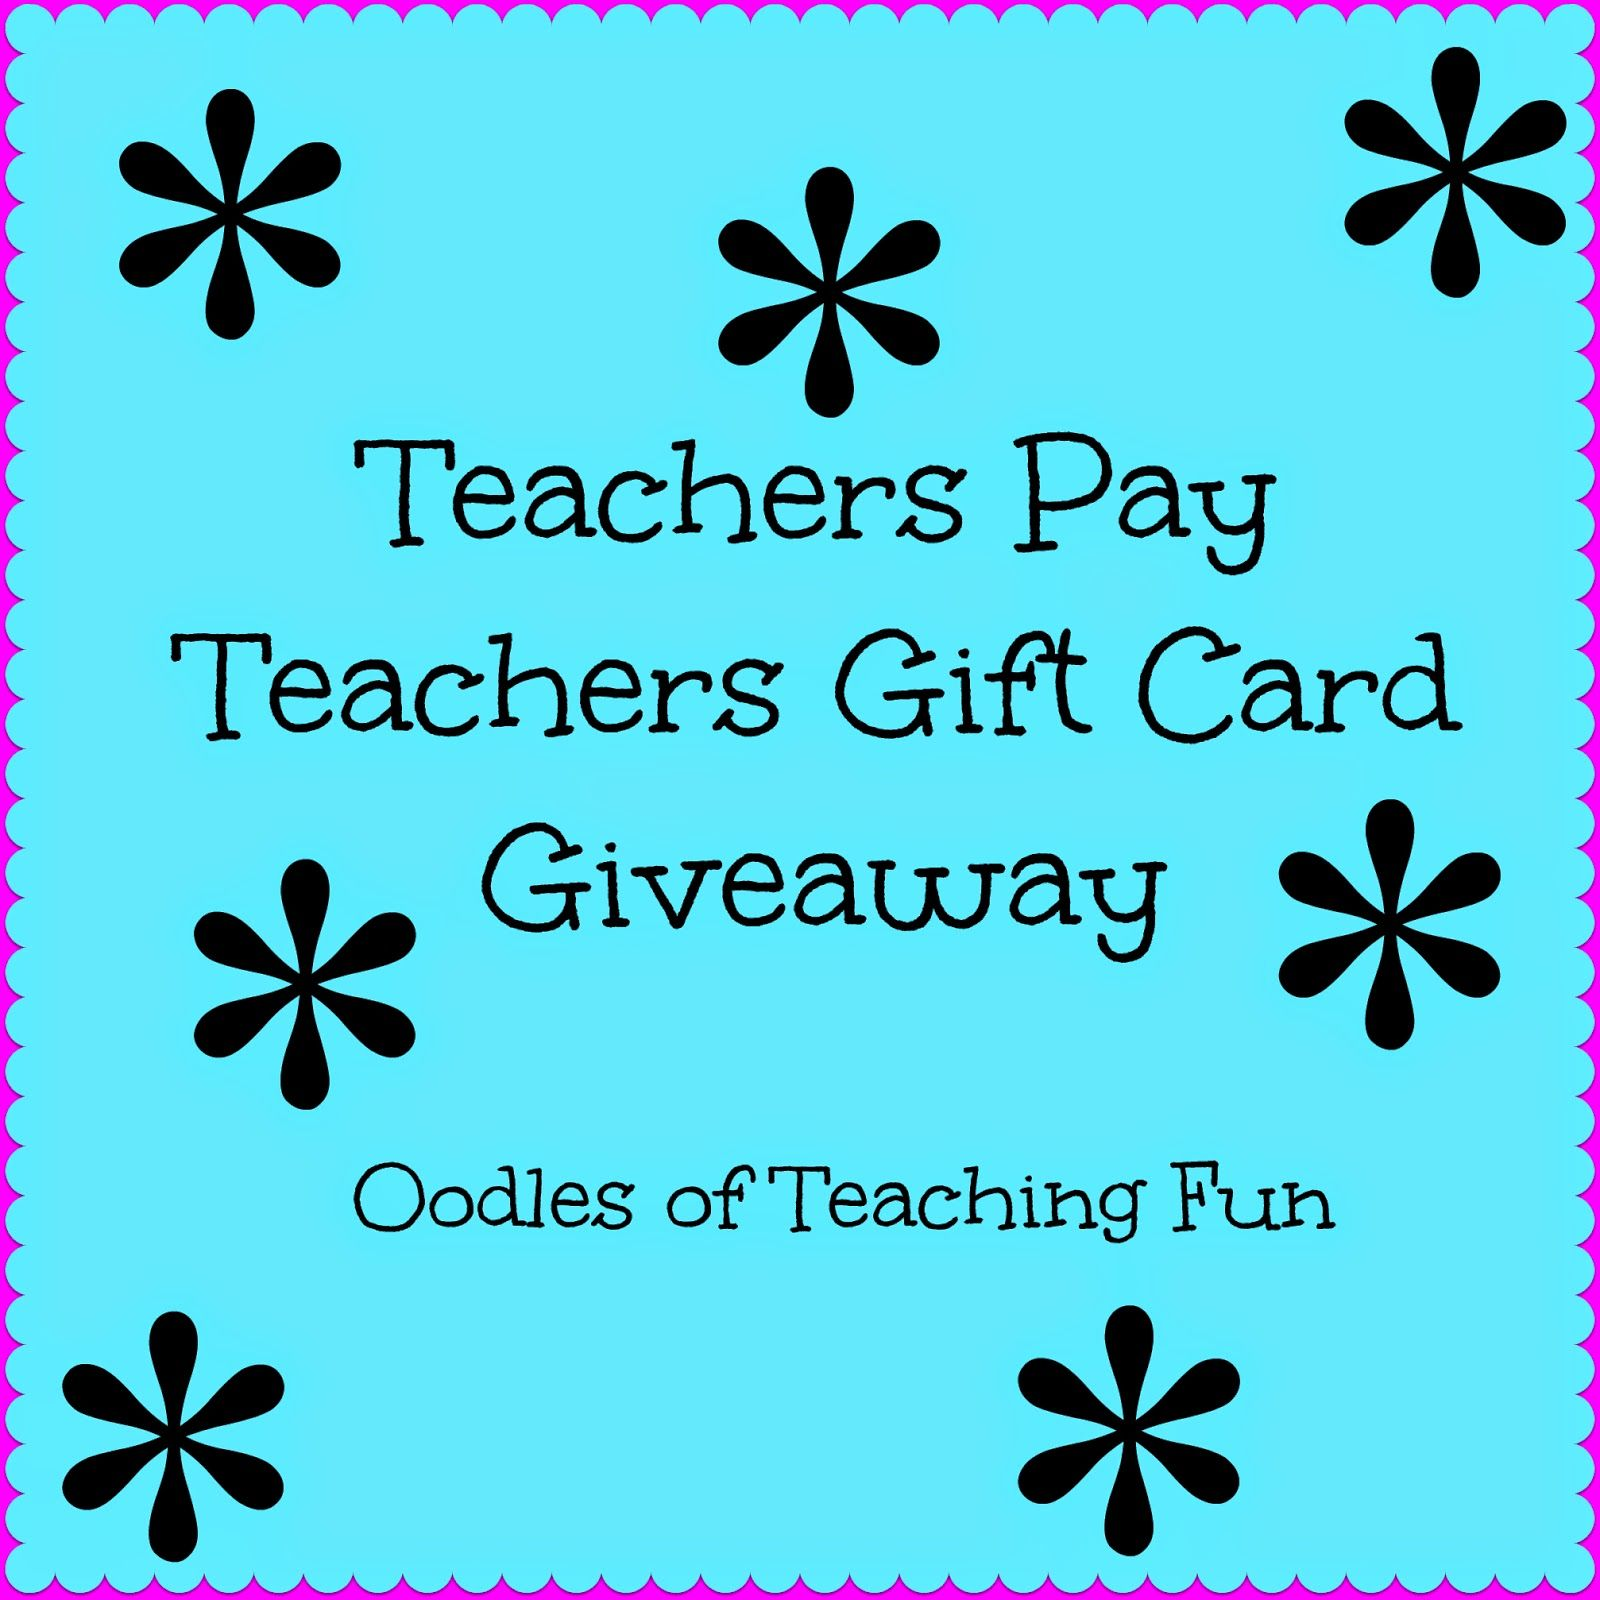 Oodles of Teaching Fun: Let's Celebrate 100 Followers On Facebook with a Giveaway!